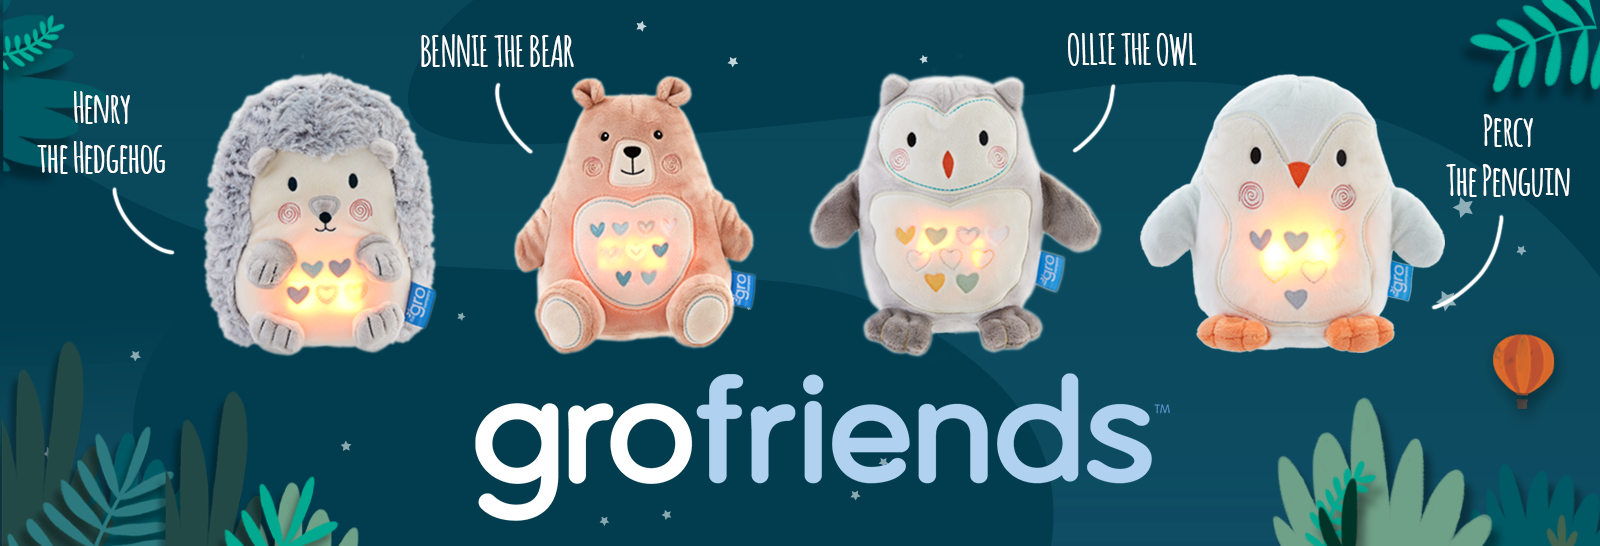 Gro friends – Light and Sound Sleep Aid | Project Baby